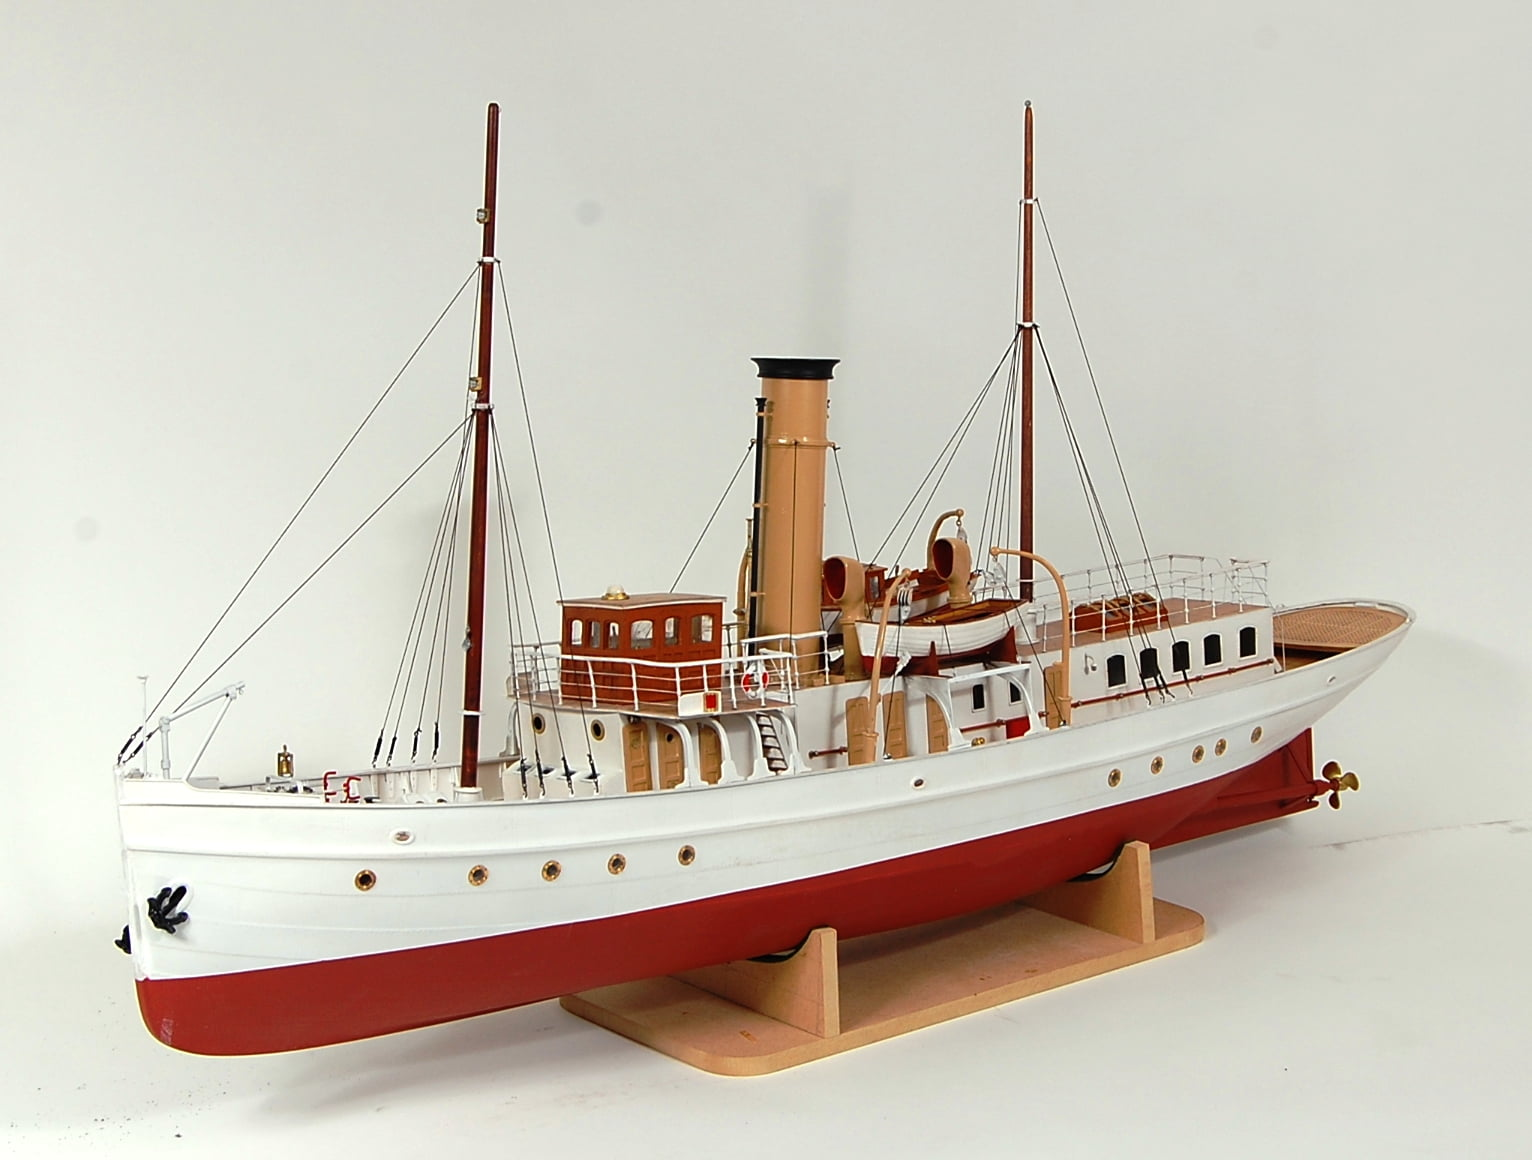 rc ships for sale with Caldercraft Schaarhorn Model Boat Kit on Passengerferry likewise 32385644147 likewise Vivo Y28l Smartphone Vivo Y28 Cell Phone Vivo Y28 Mobile Phone Vivo Y28l 4g Lte Android Phone furthermore Rc0408 additionally World Warships German Battleship Bismarck Italeri 36506.